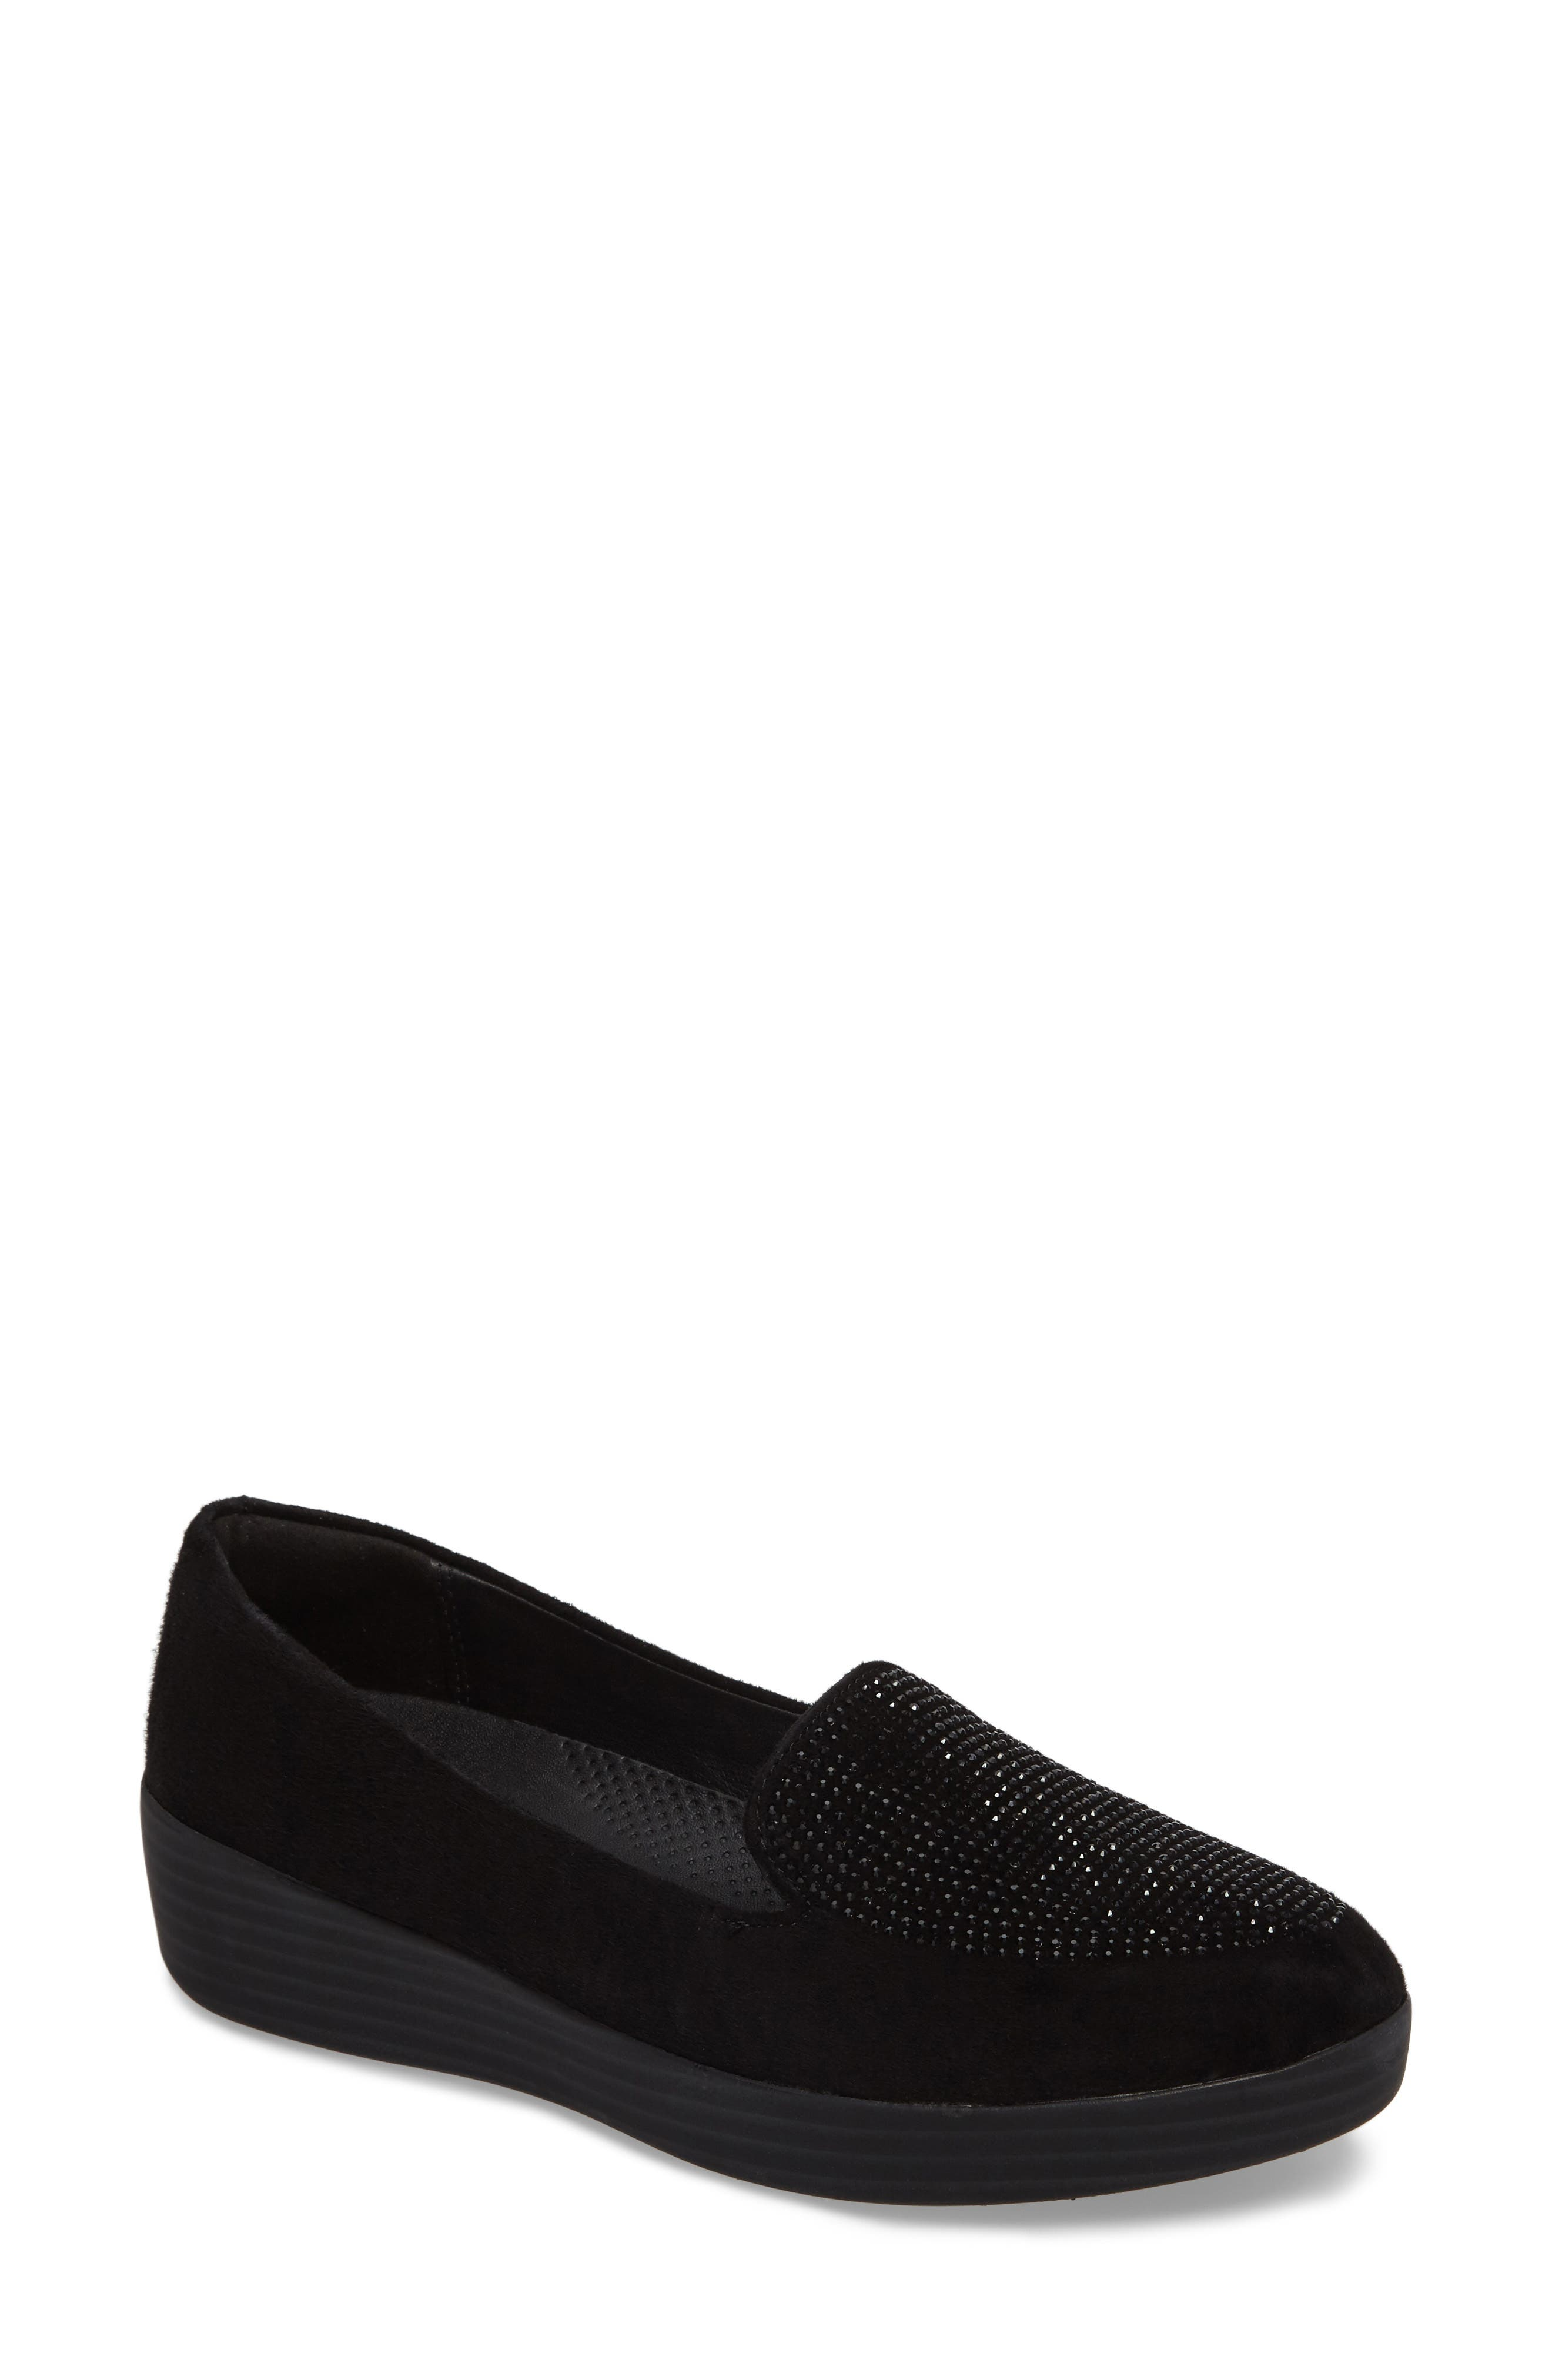 Alternate Image 1 Selected - FitFlop Sparkly Sneakerloafer Slip-On (Women)